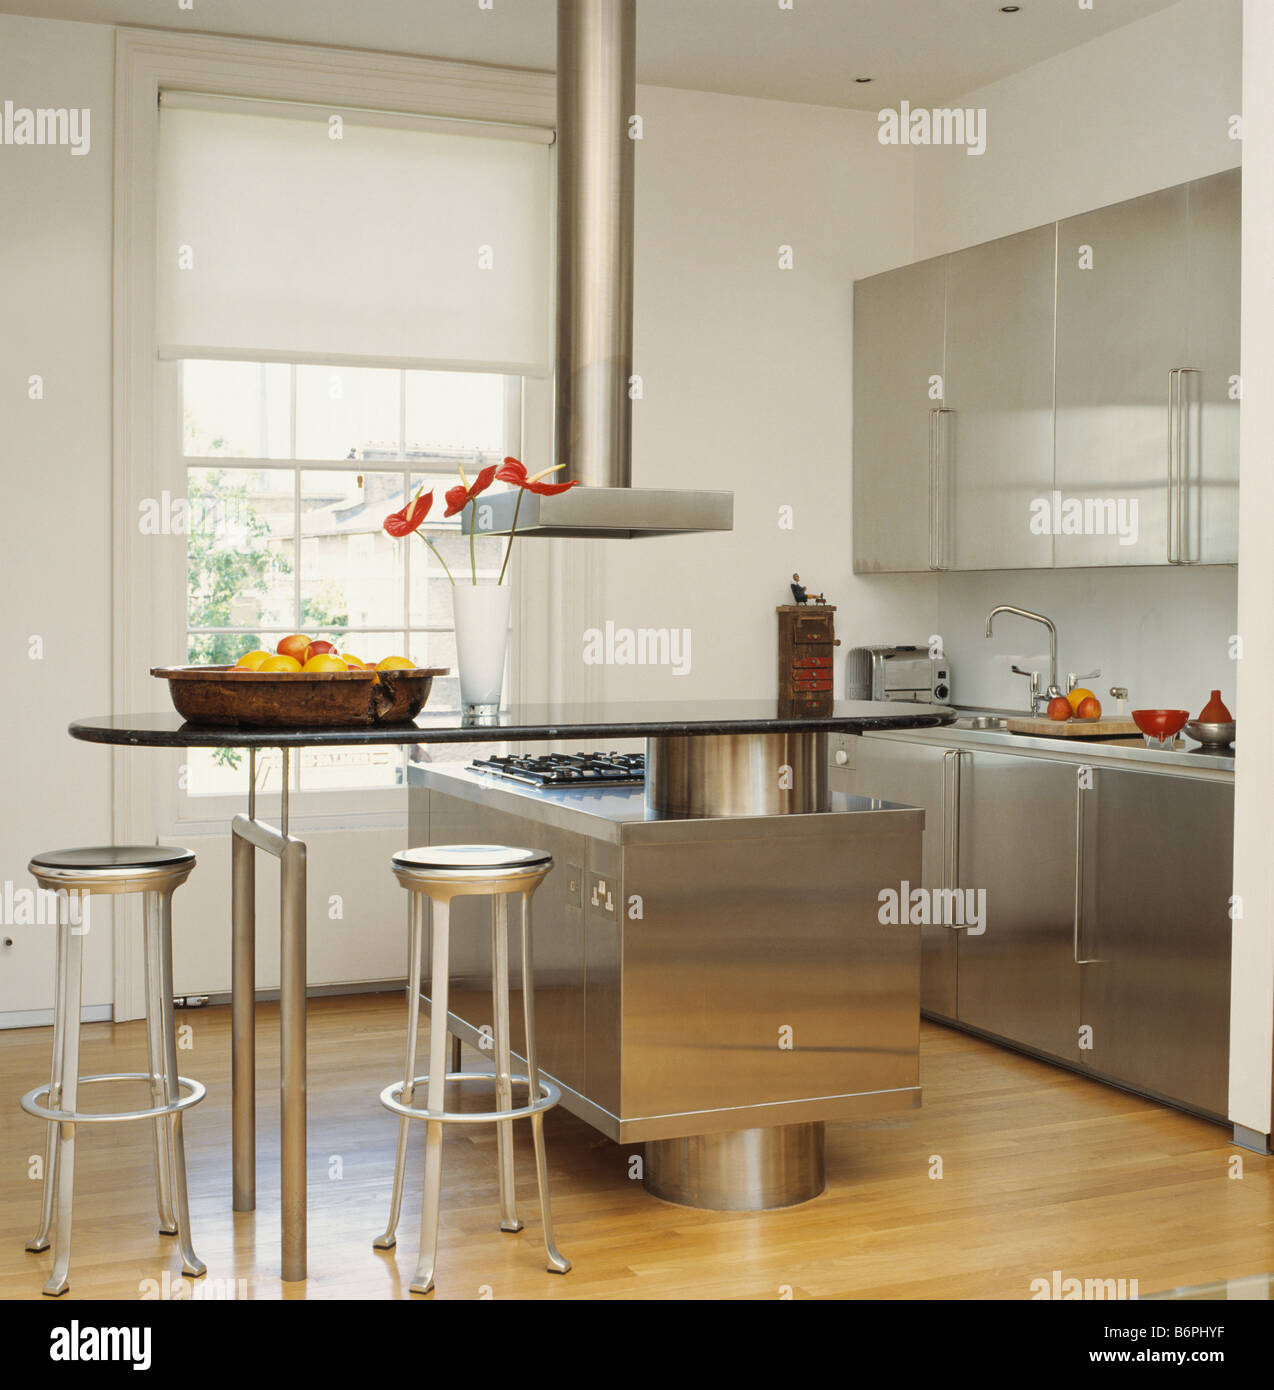 Metal Stools At Glass Breakfast Bar In Modern White Kitchen With Stainless  Steel Fitted Units And Wooden Flooring